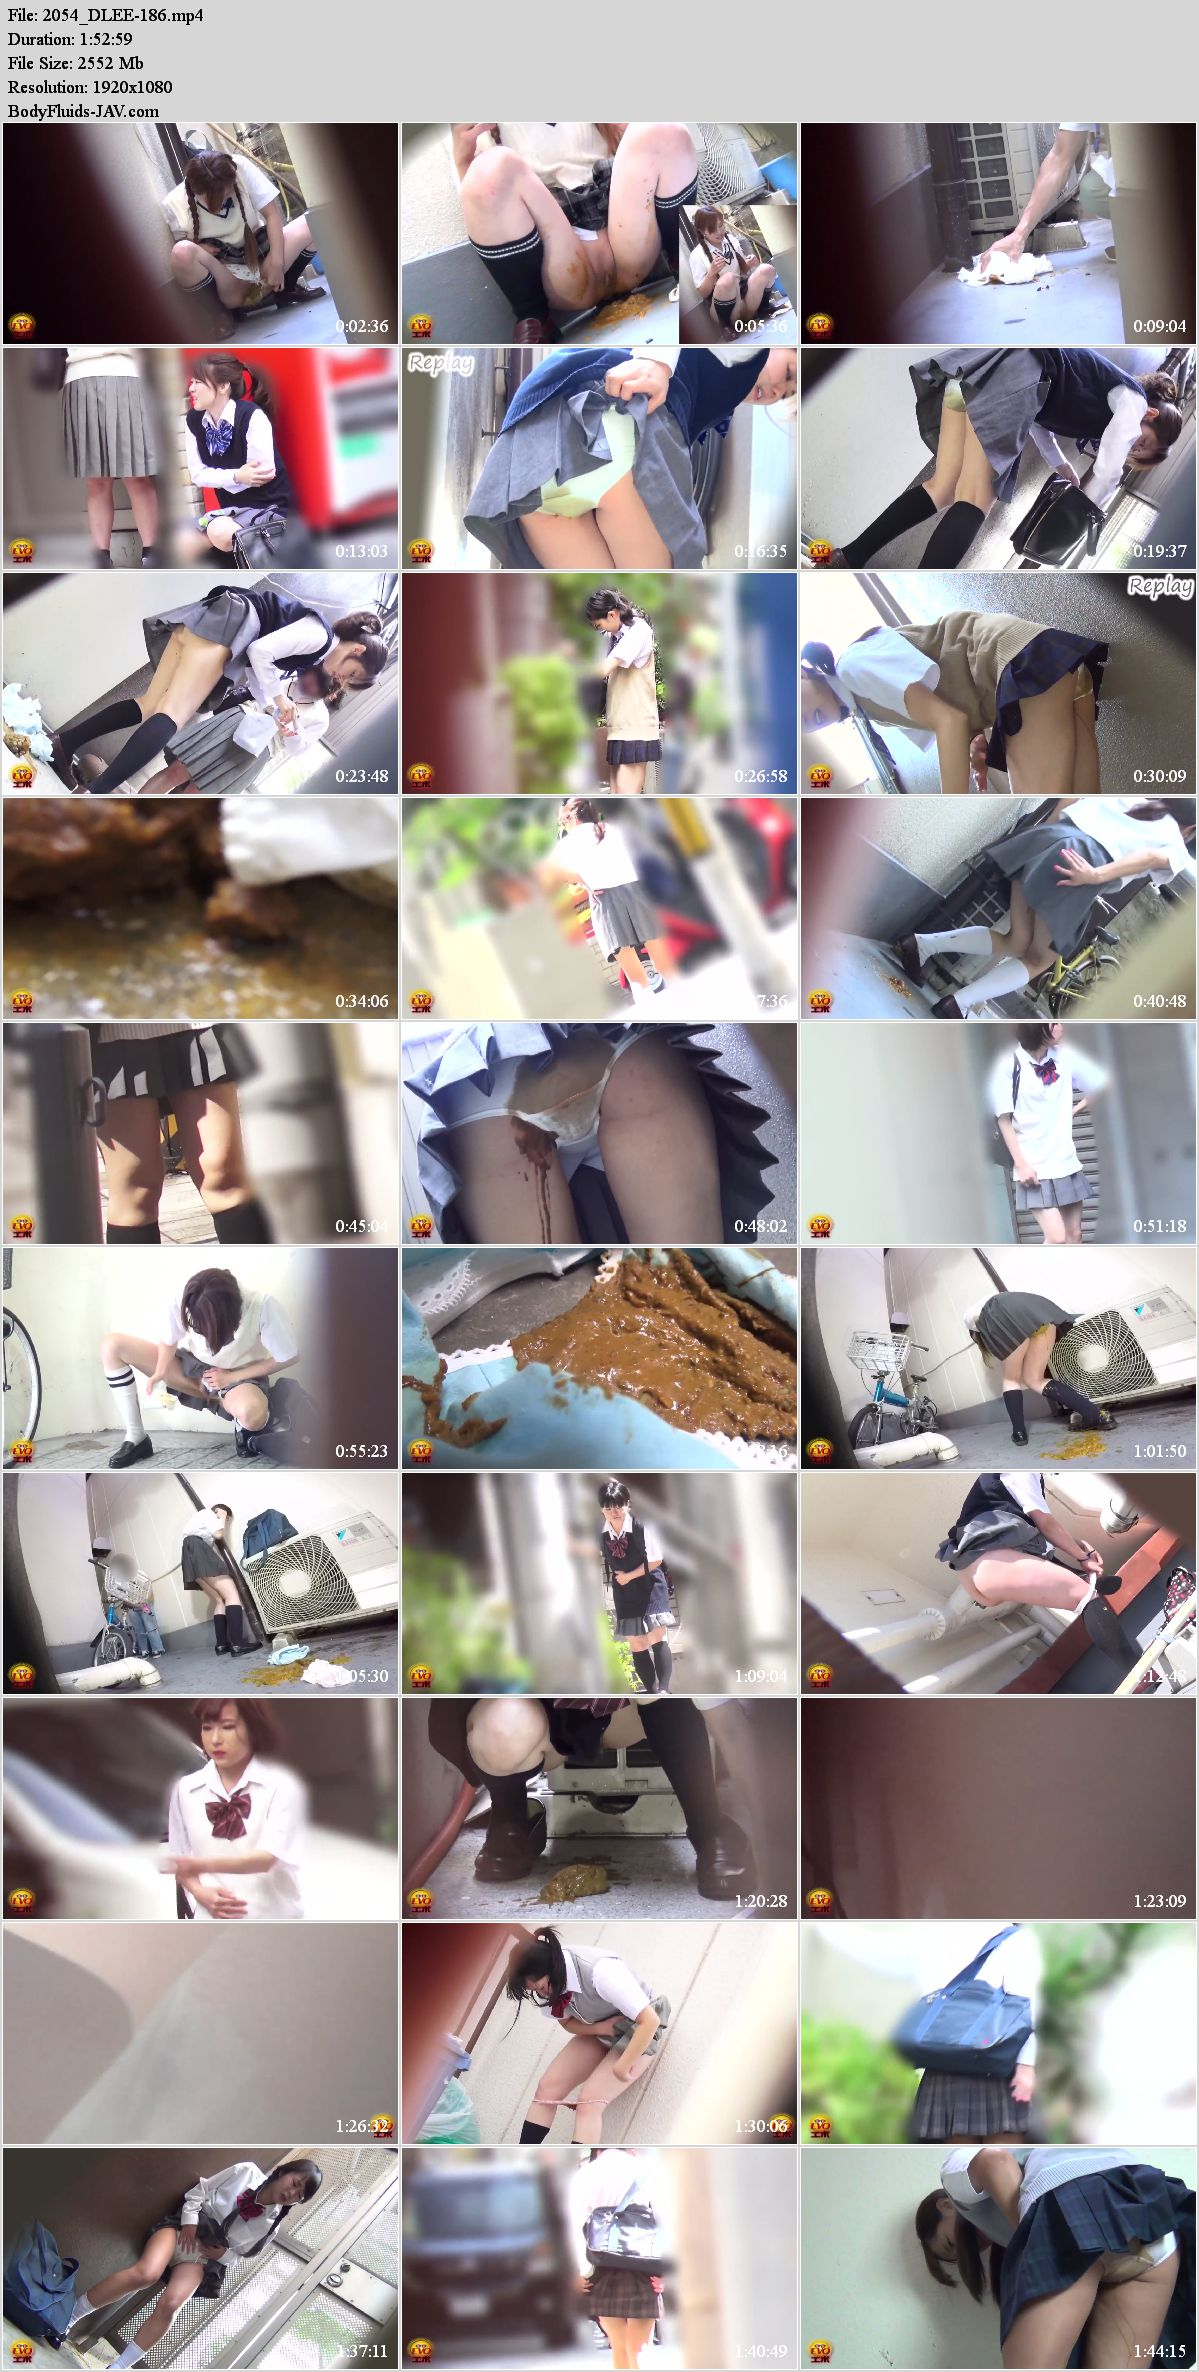 EE-186 Pantypoop accident in schoolgirls on back alley. (HD 1080p)